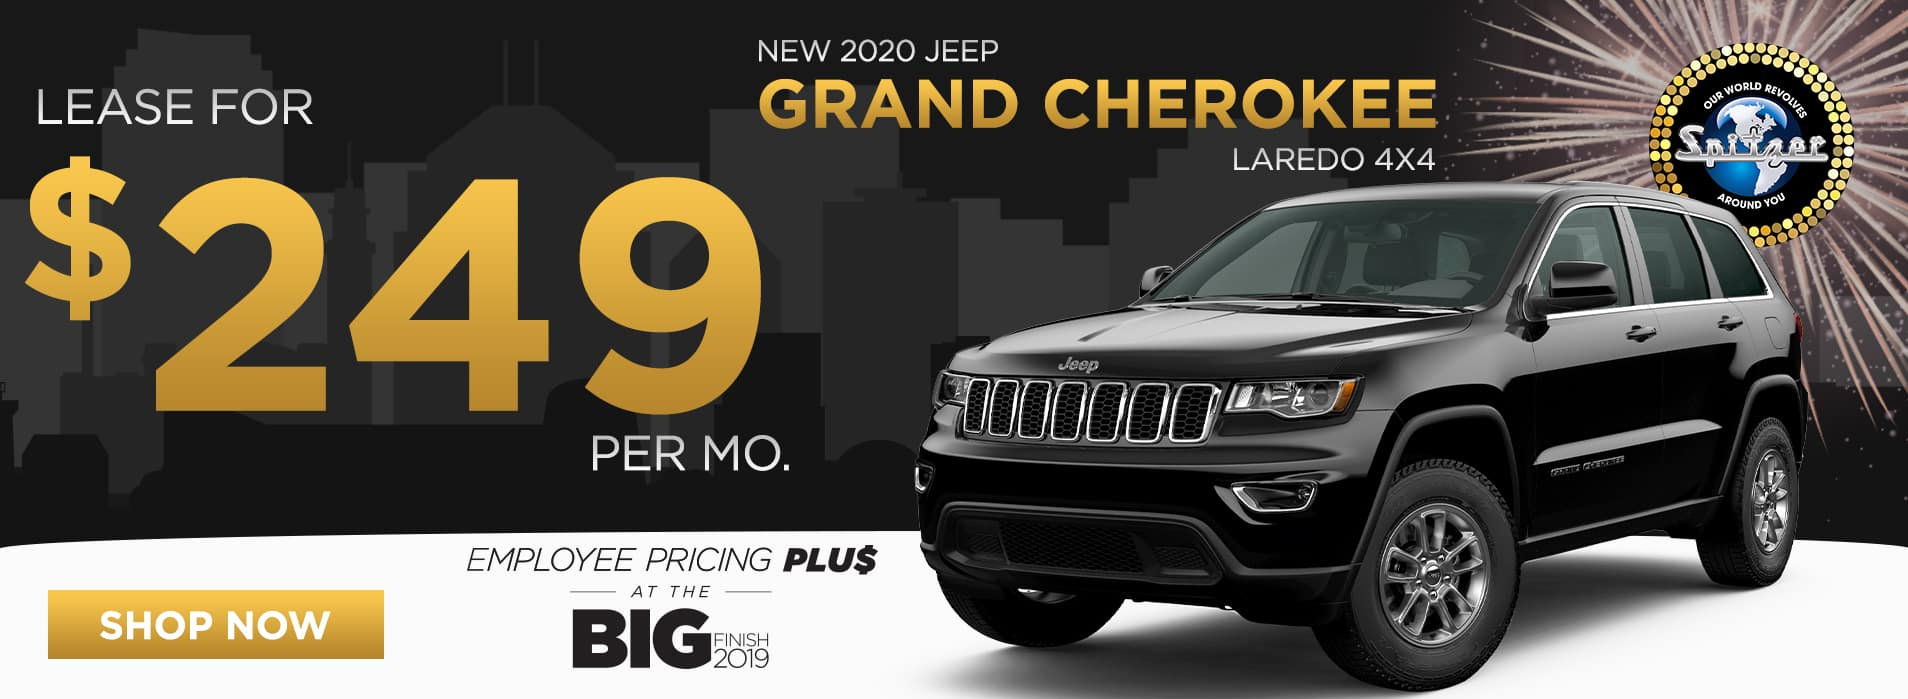 Grand Cherokee | Lease for $249 per mo